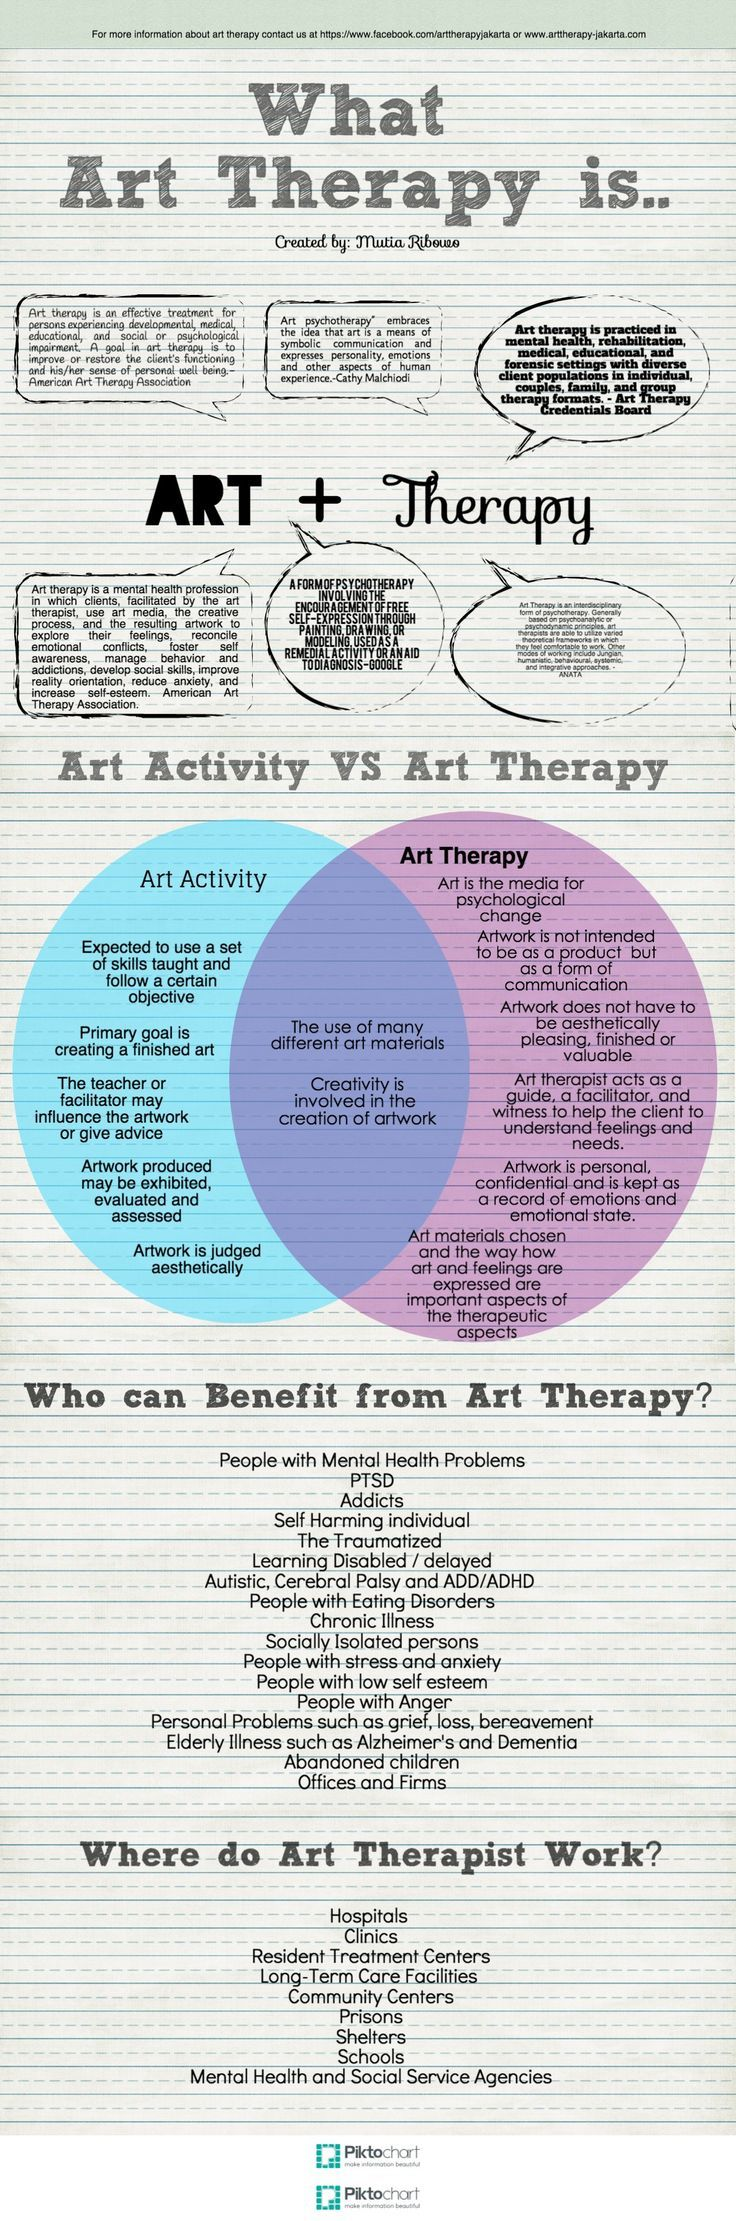 Information about art therapy, how art therapy differ from art activities, and who can benefit art therapy. #arttherapy: